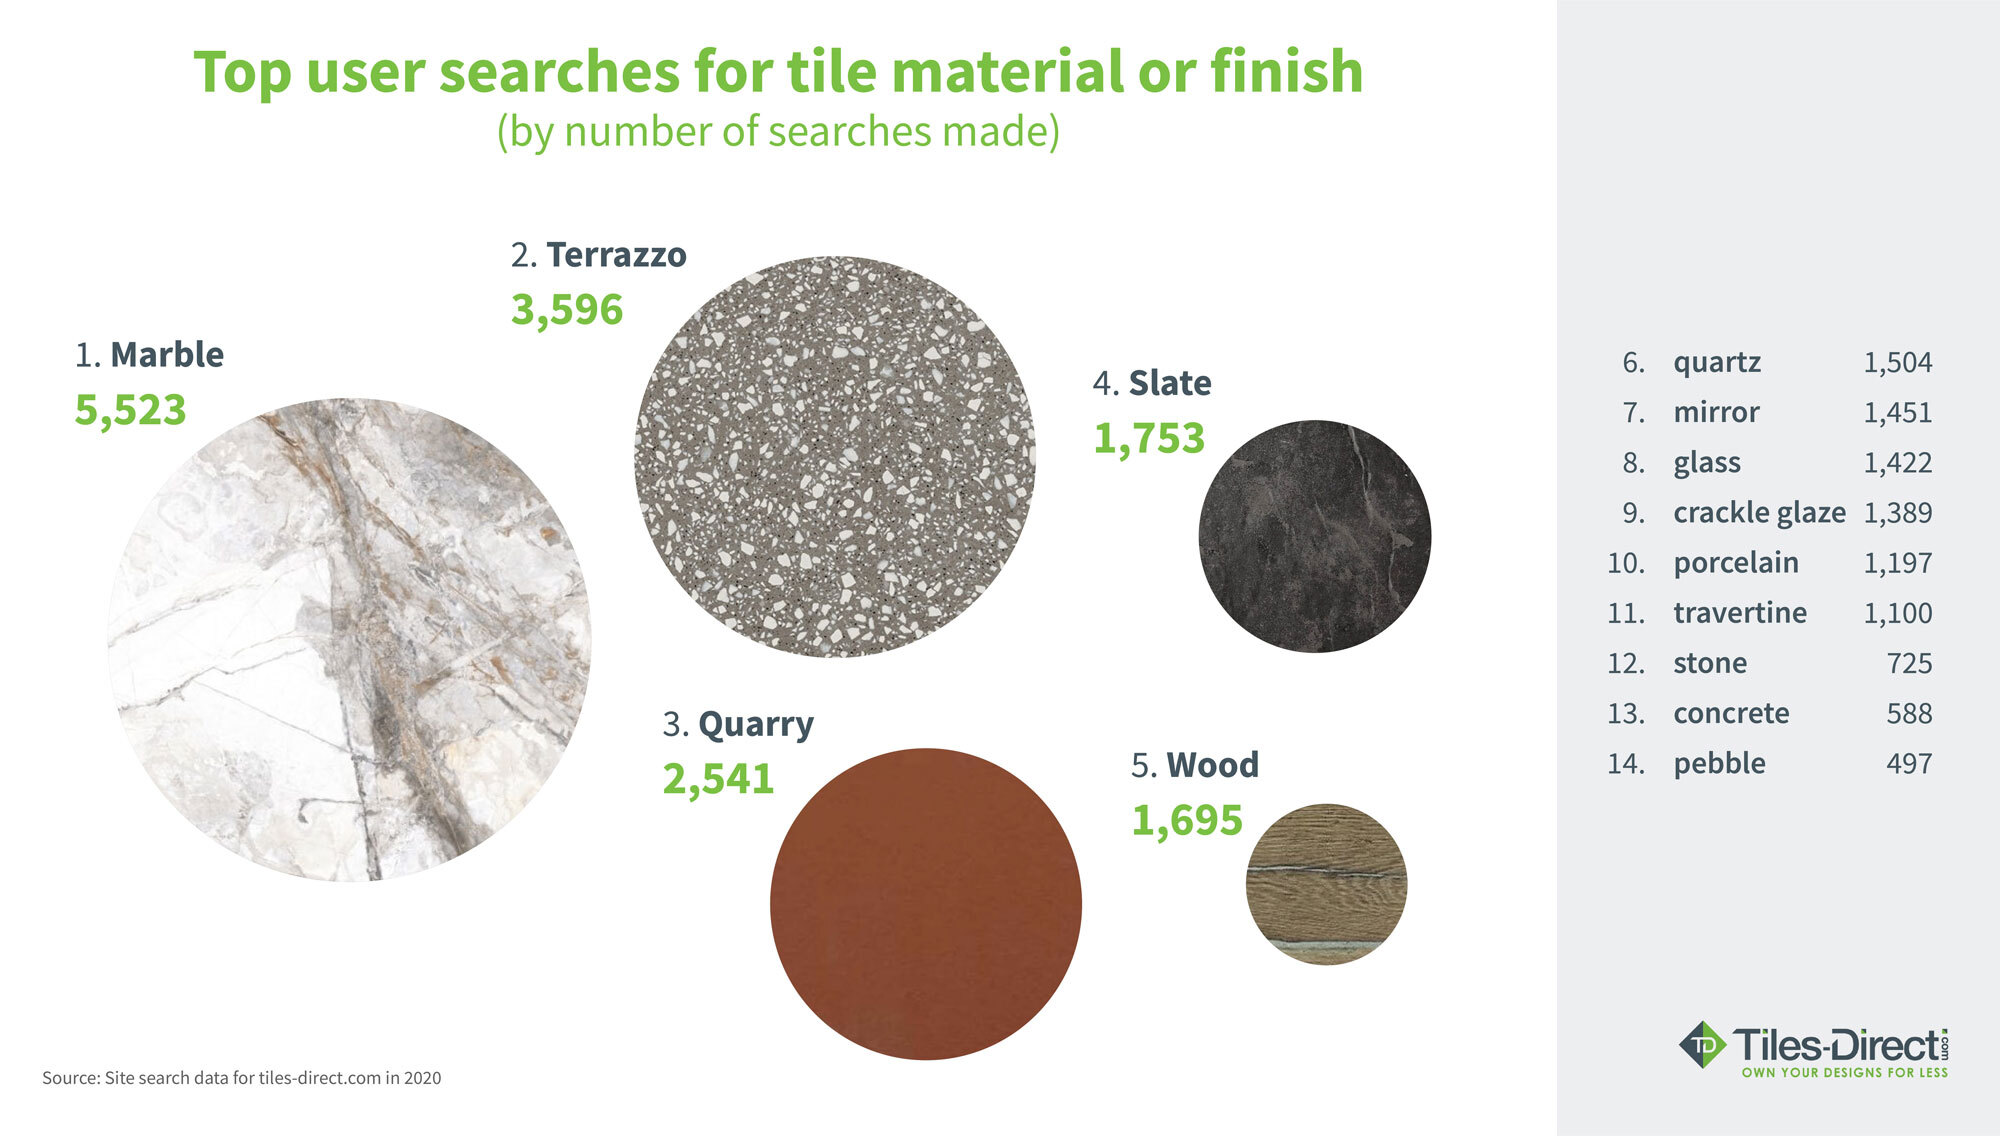 tile material and finish searches